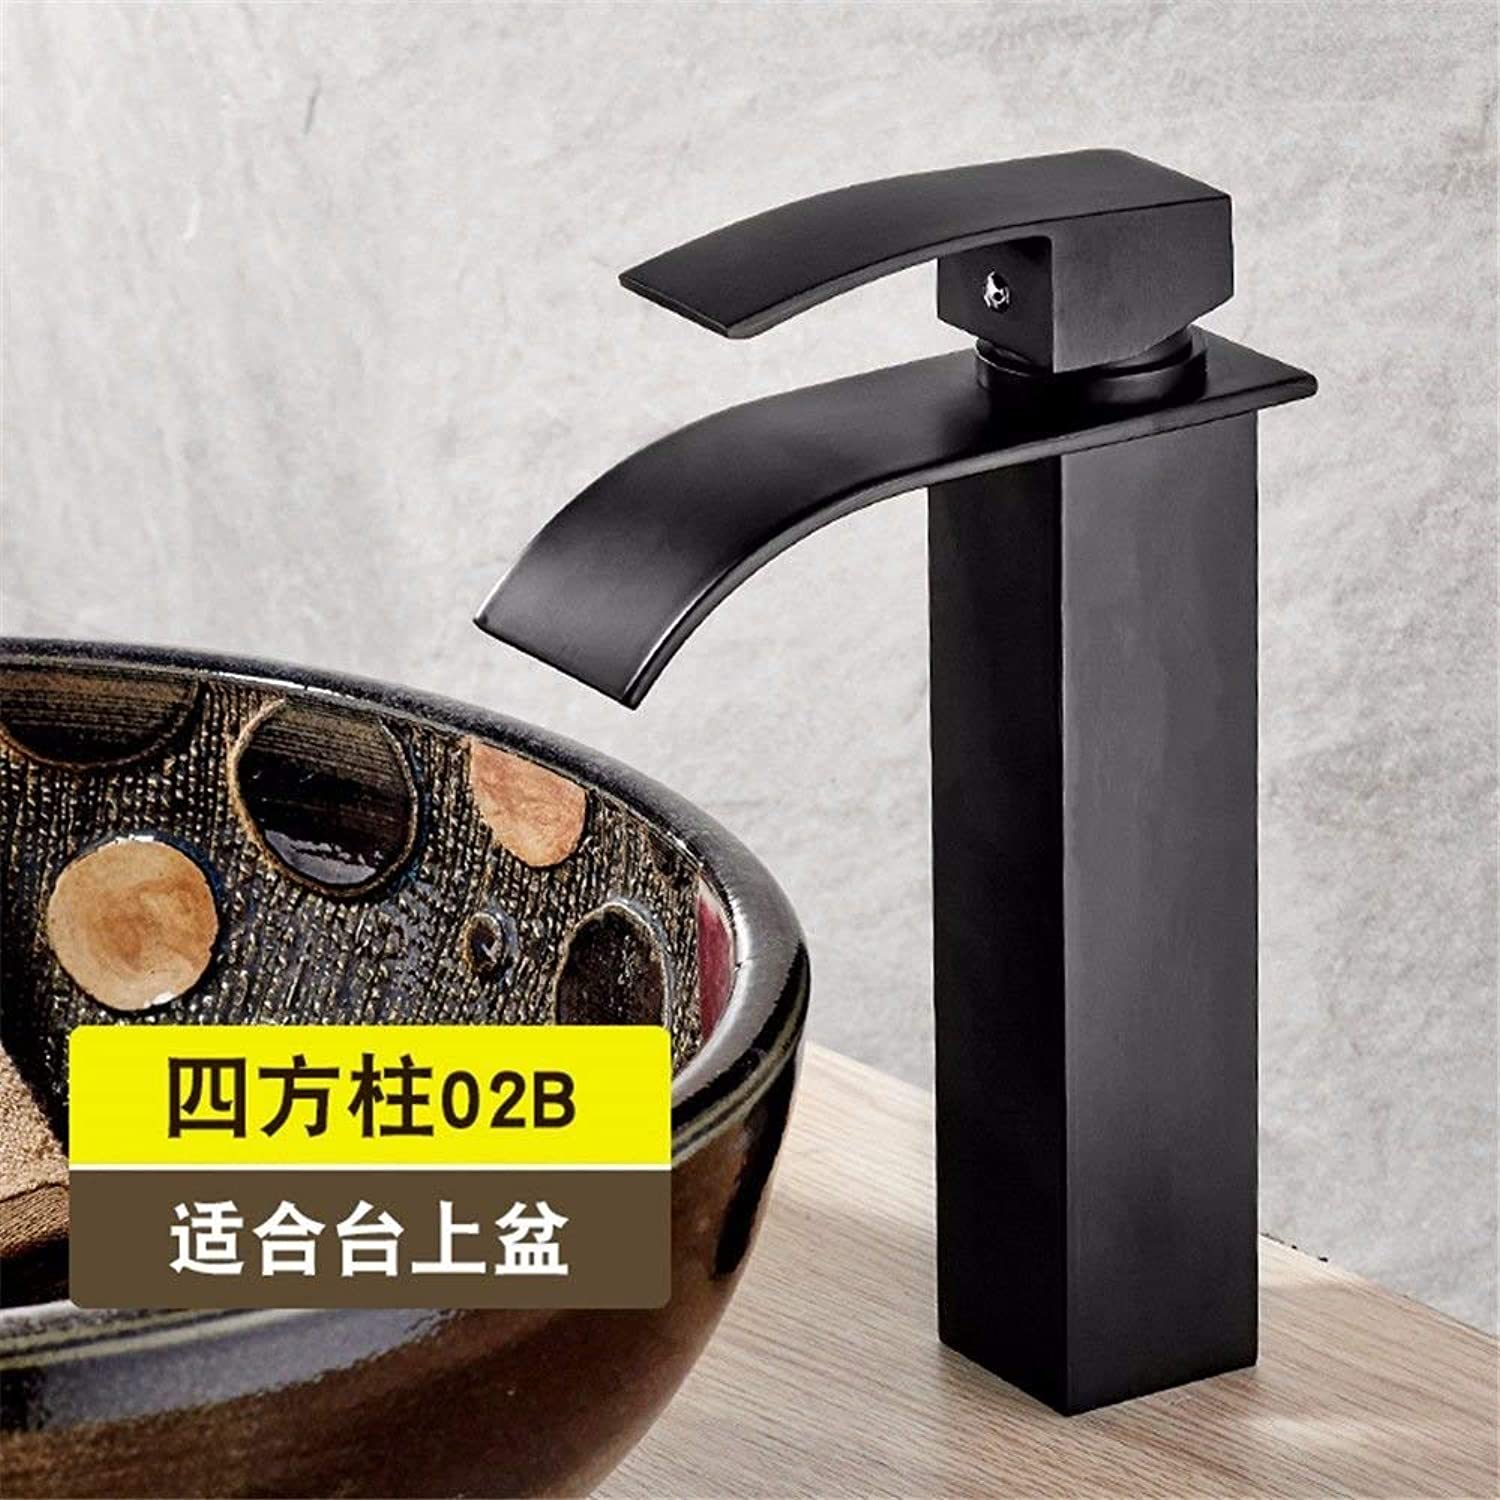 Oudan Bathroom Sink Basin Tap Brass Mixer Tap Washroom Mixer Faucet The black surface sink vanity area with hand wash basin waterfall faucet full copper hot and